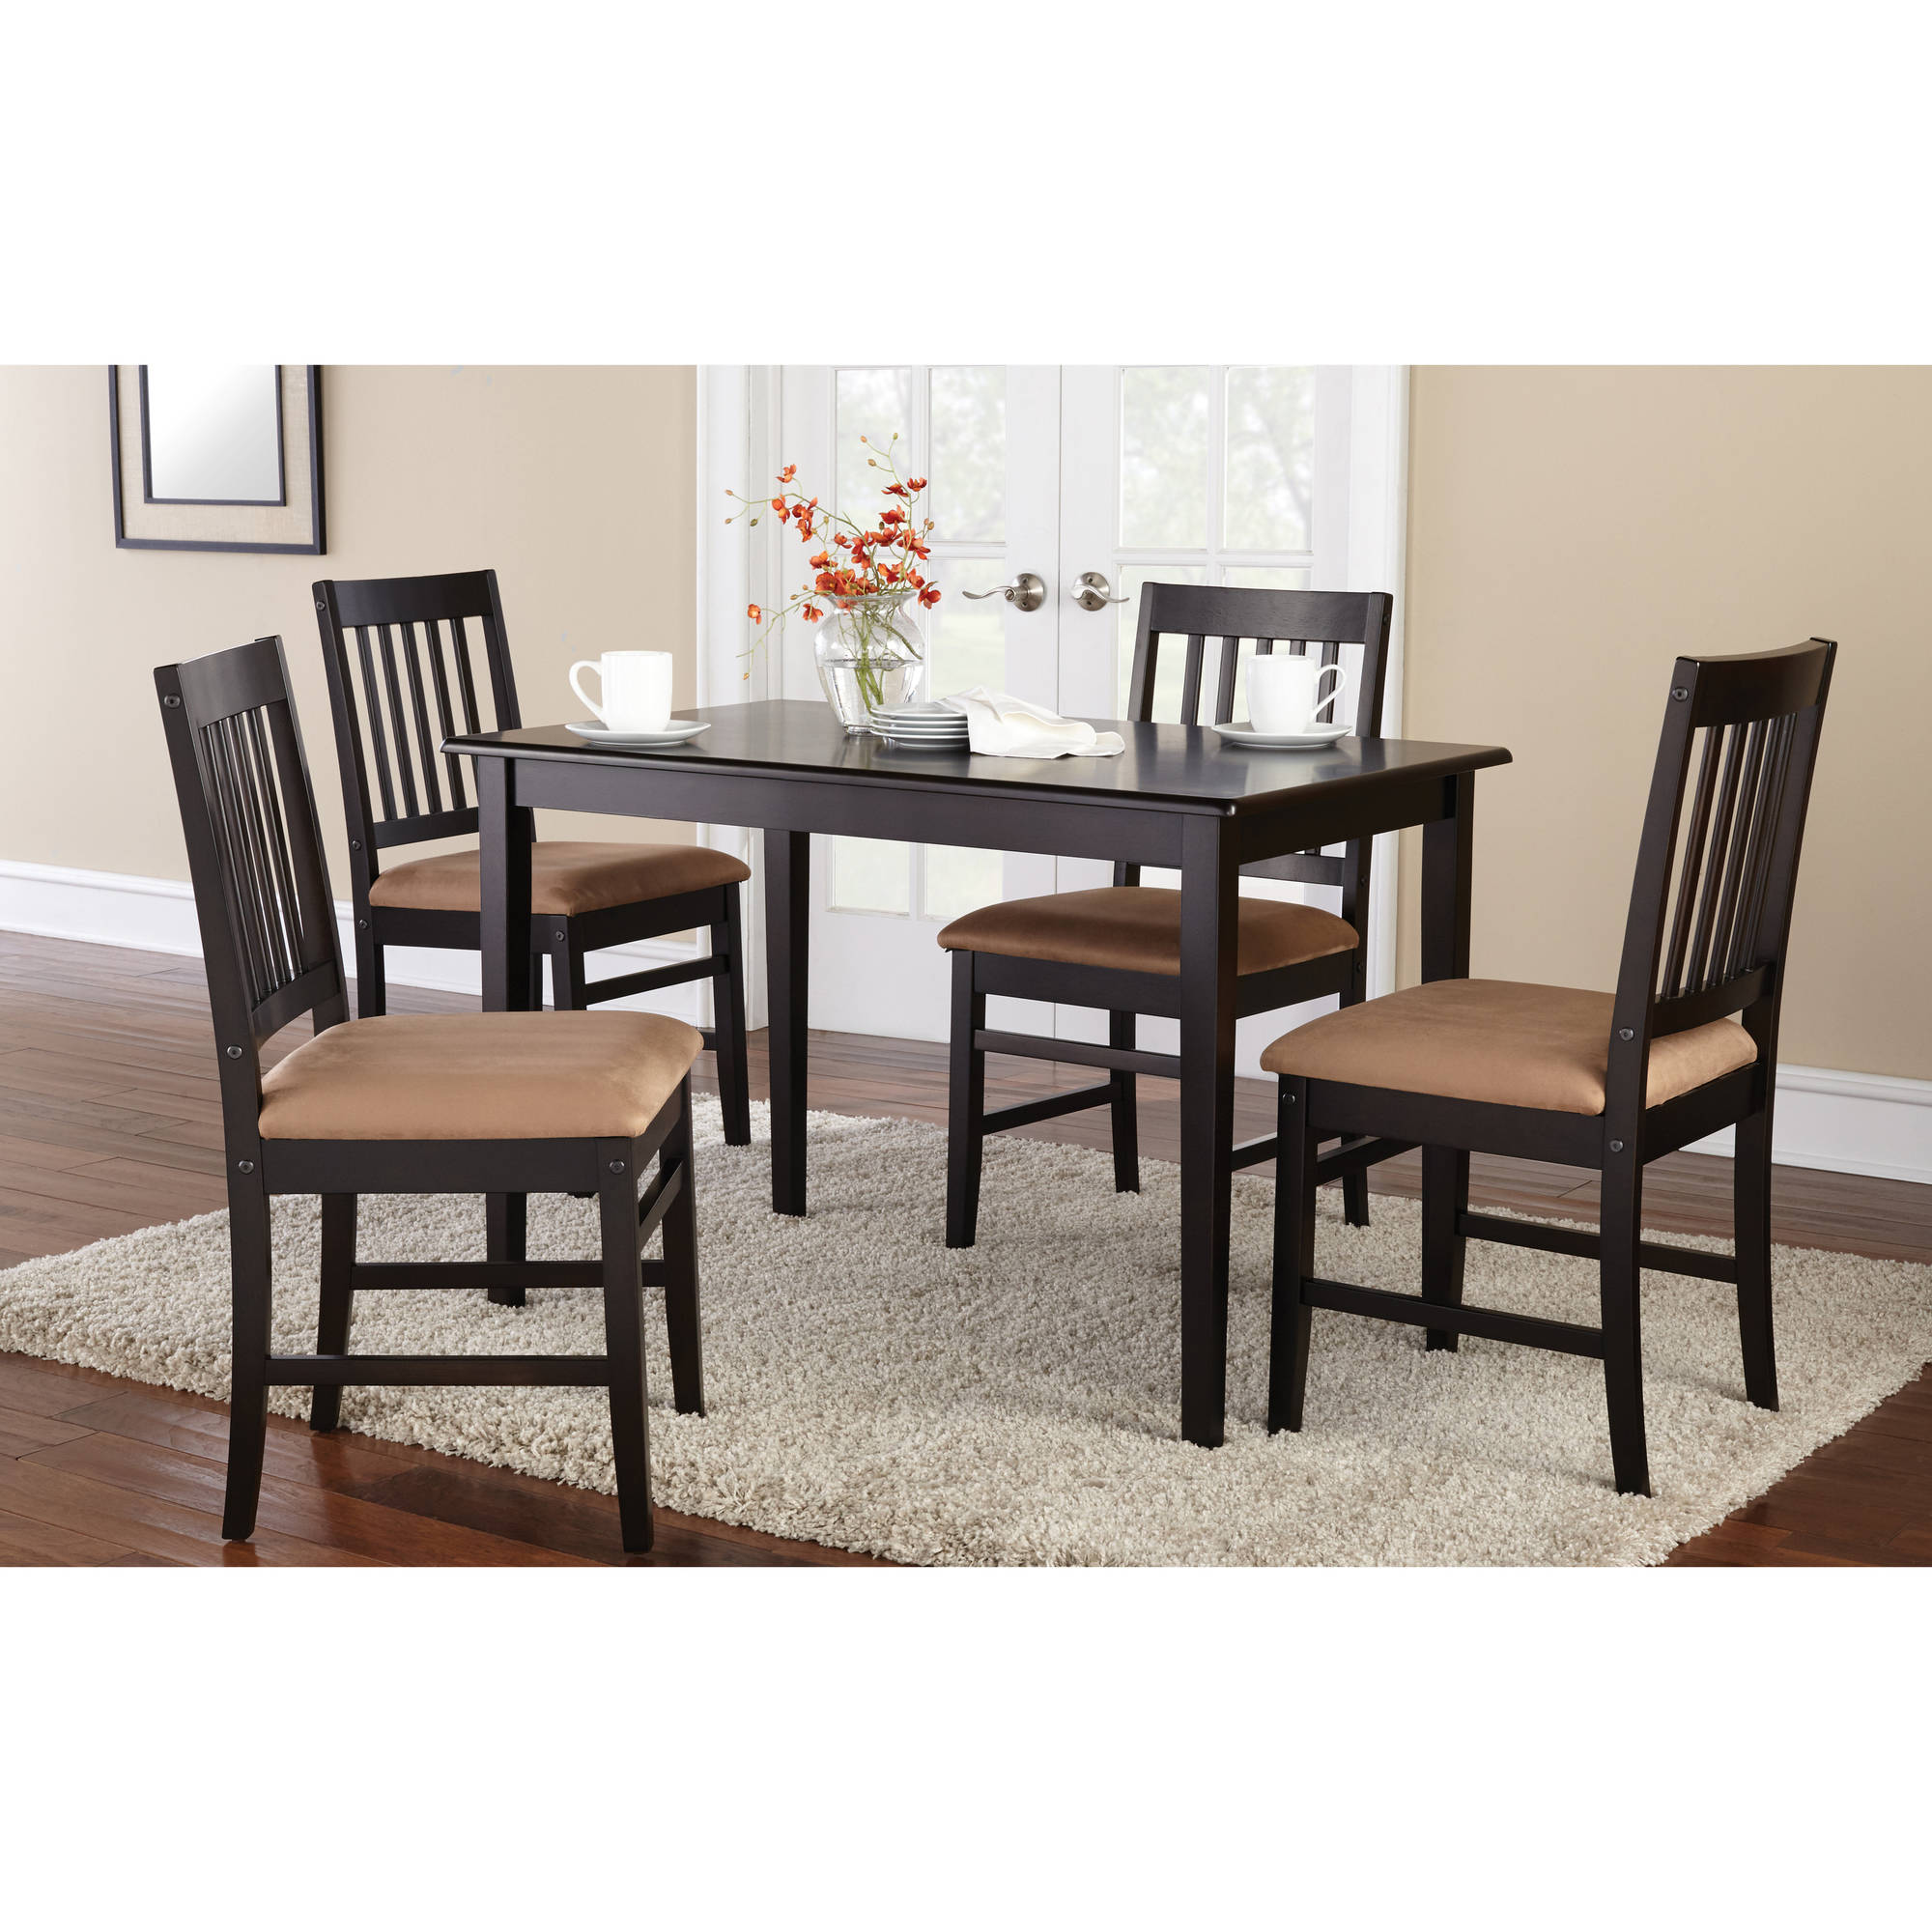 Mainstays 5 Piece Dining Set With Rich Espresso Finish Walmart Com Walmart Com